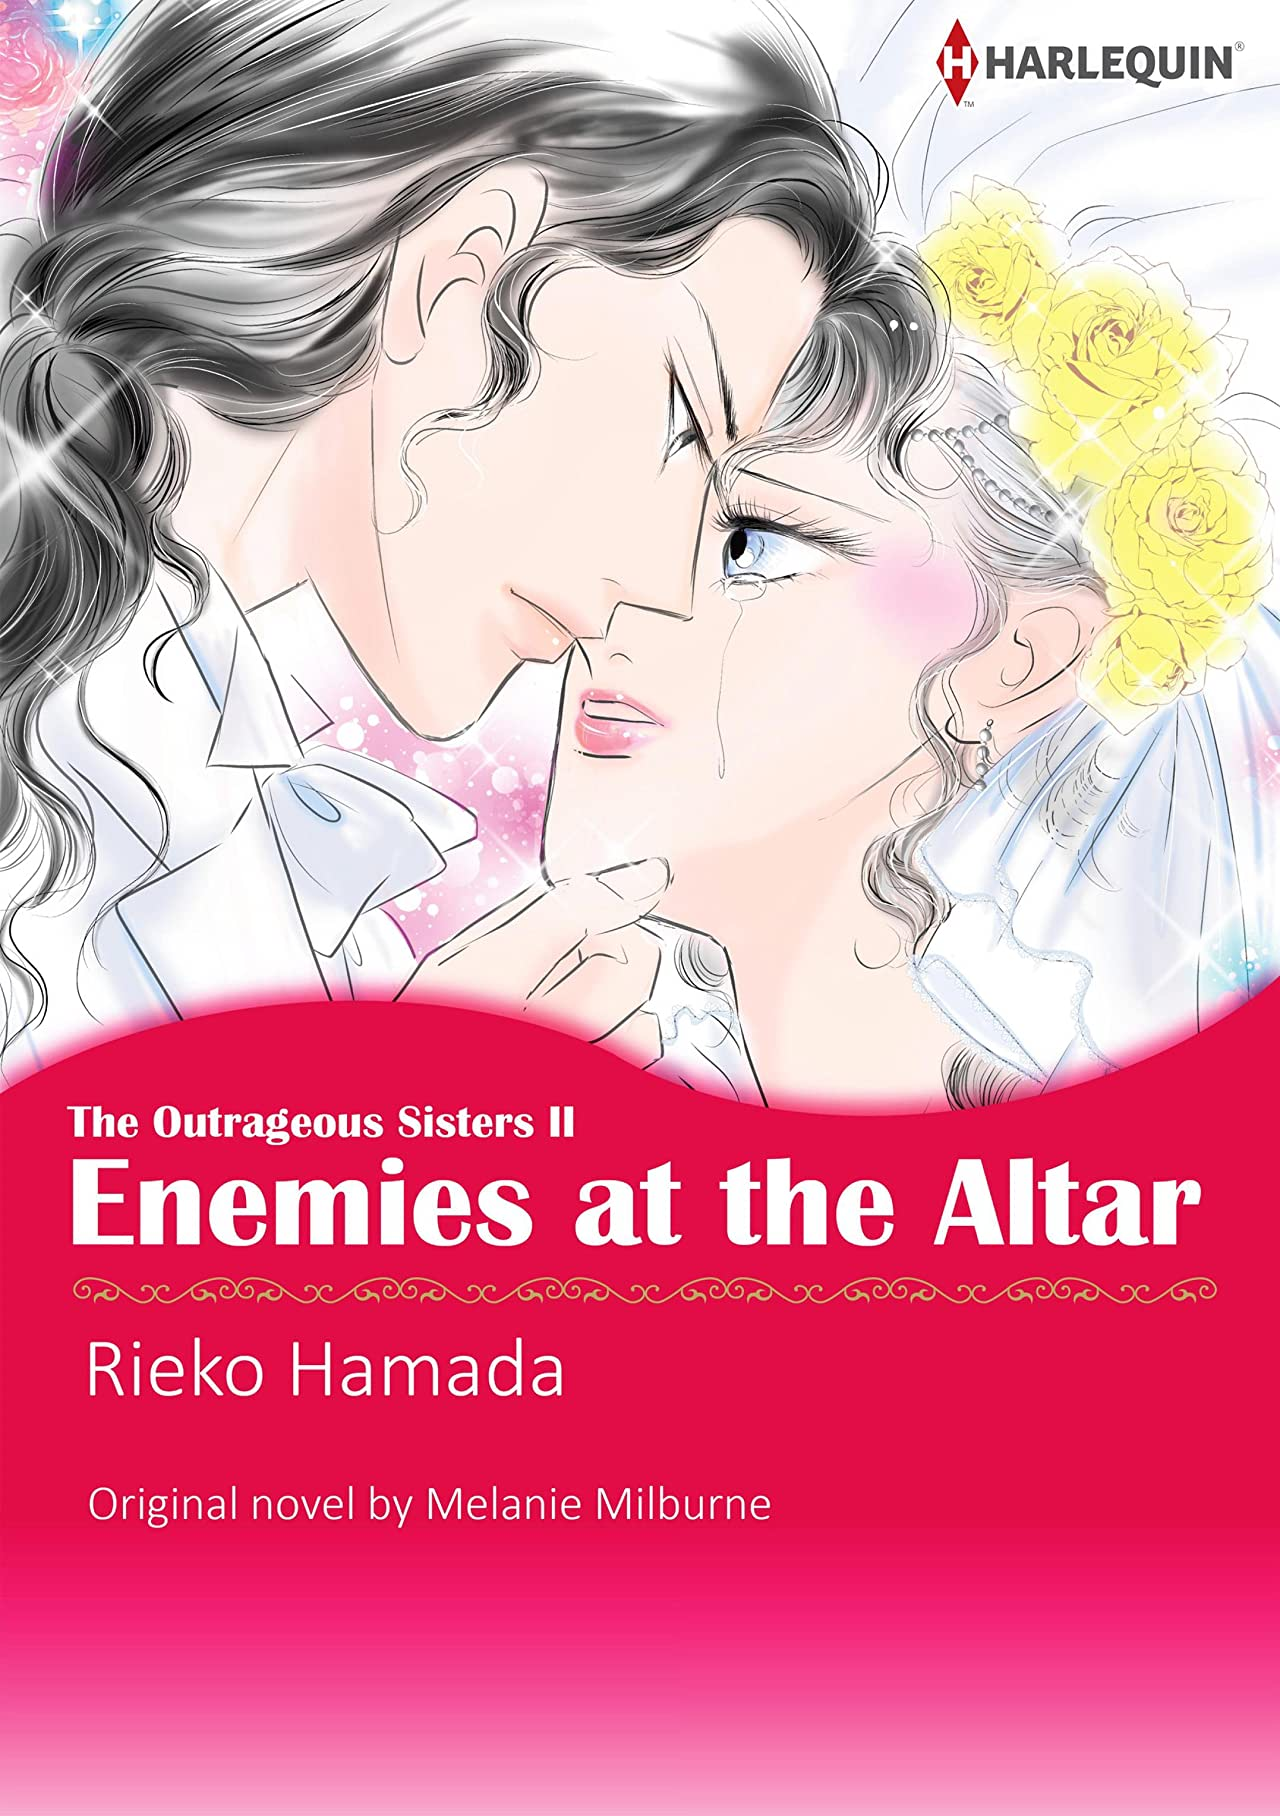 Enemies At The Altar Vol. 2: The Outrageous Sisters II